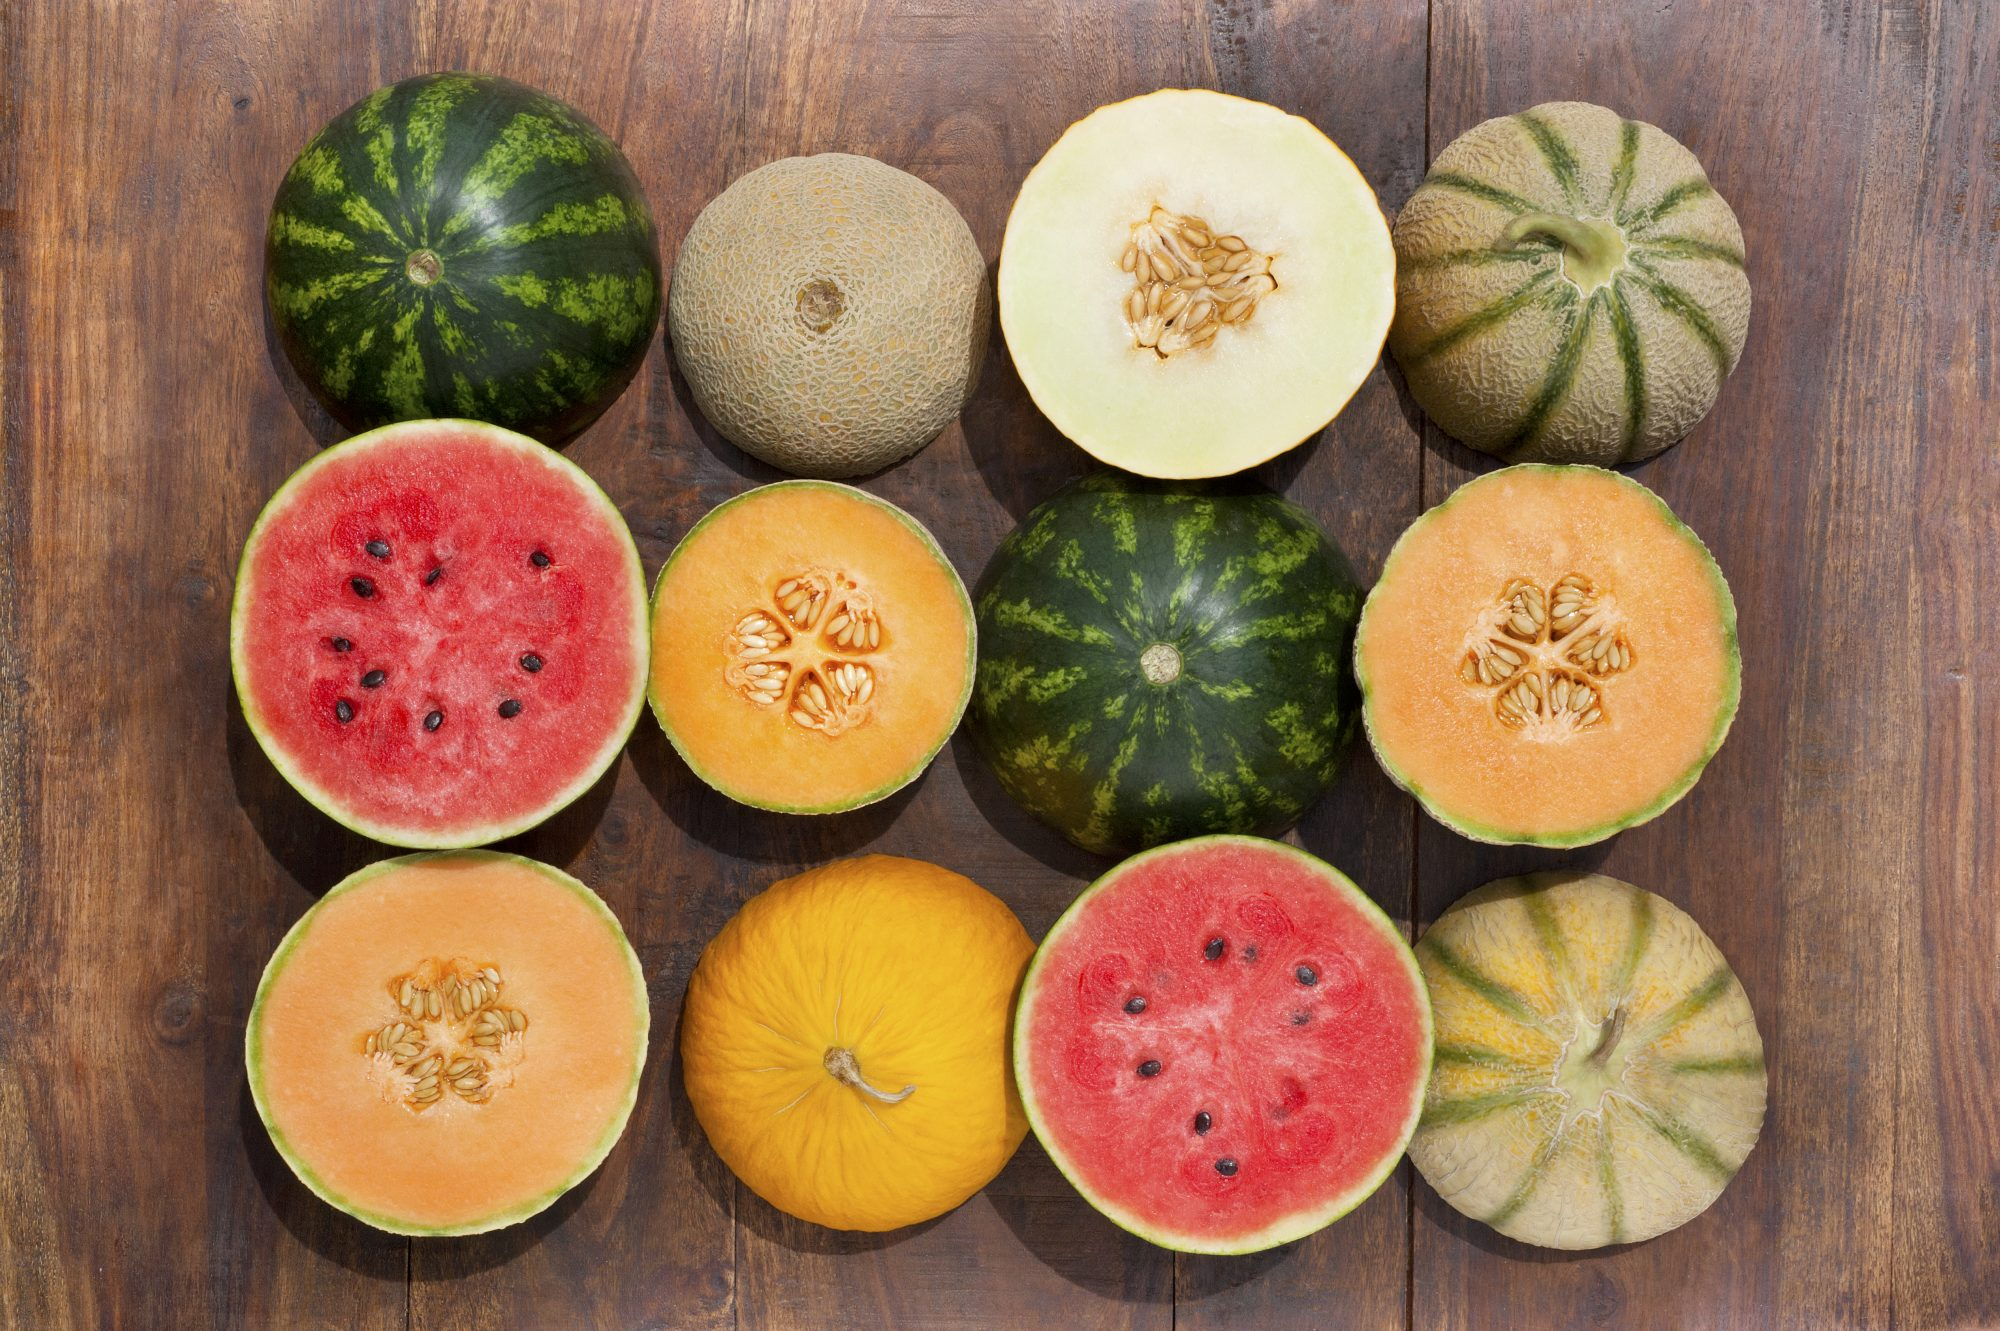 How to Pick a Good Melon